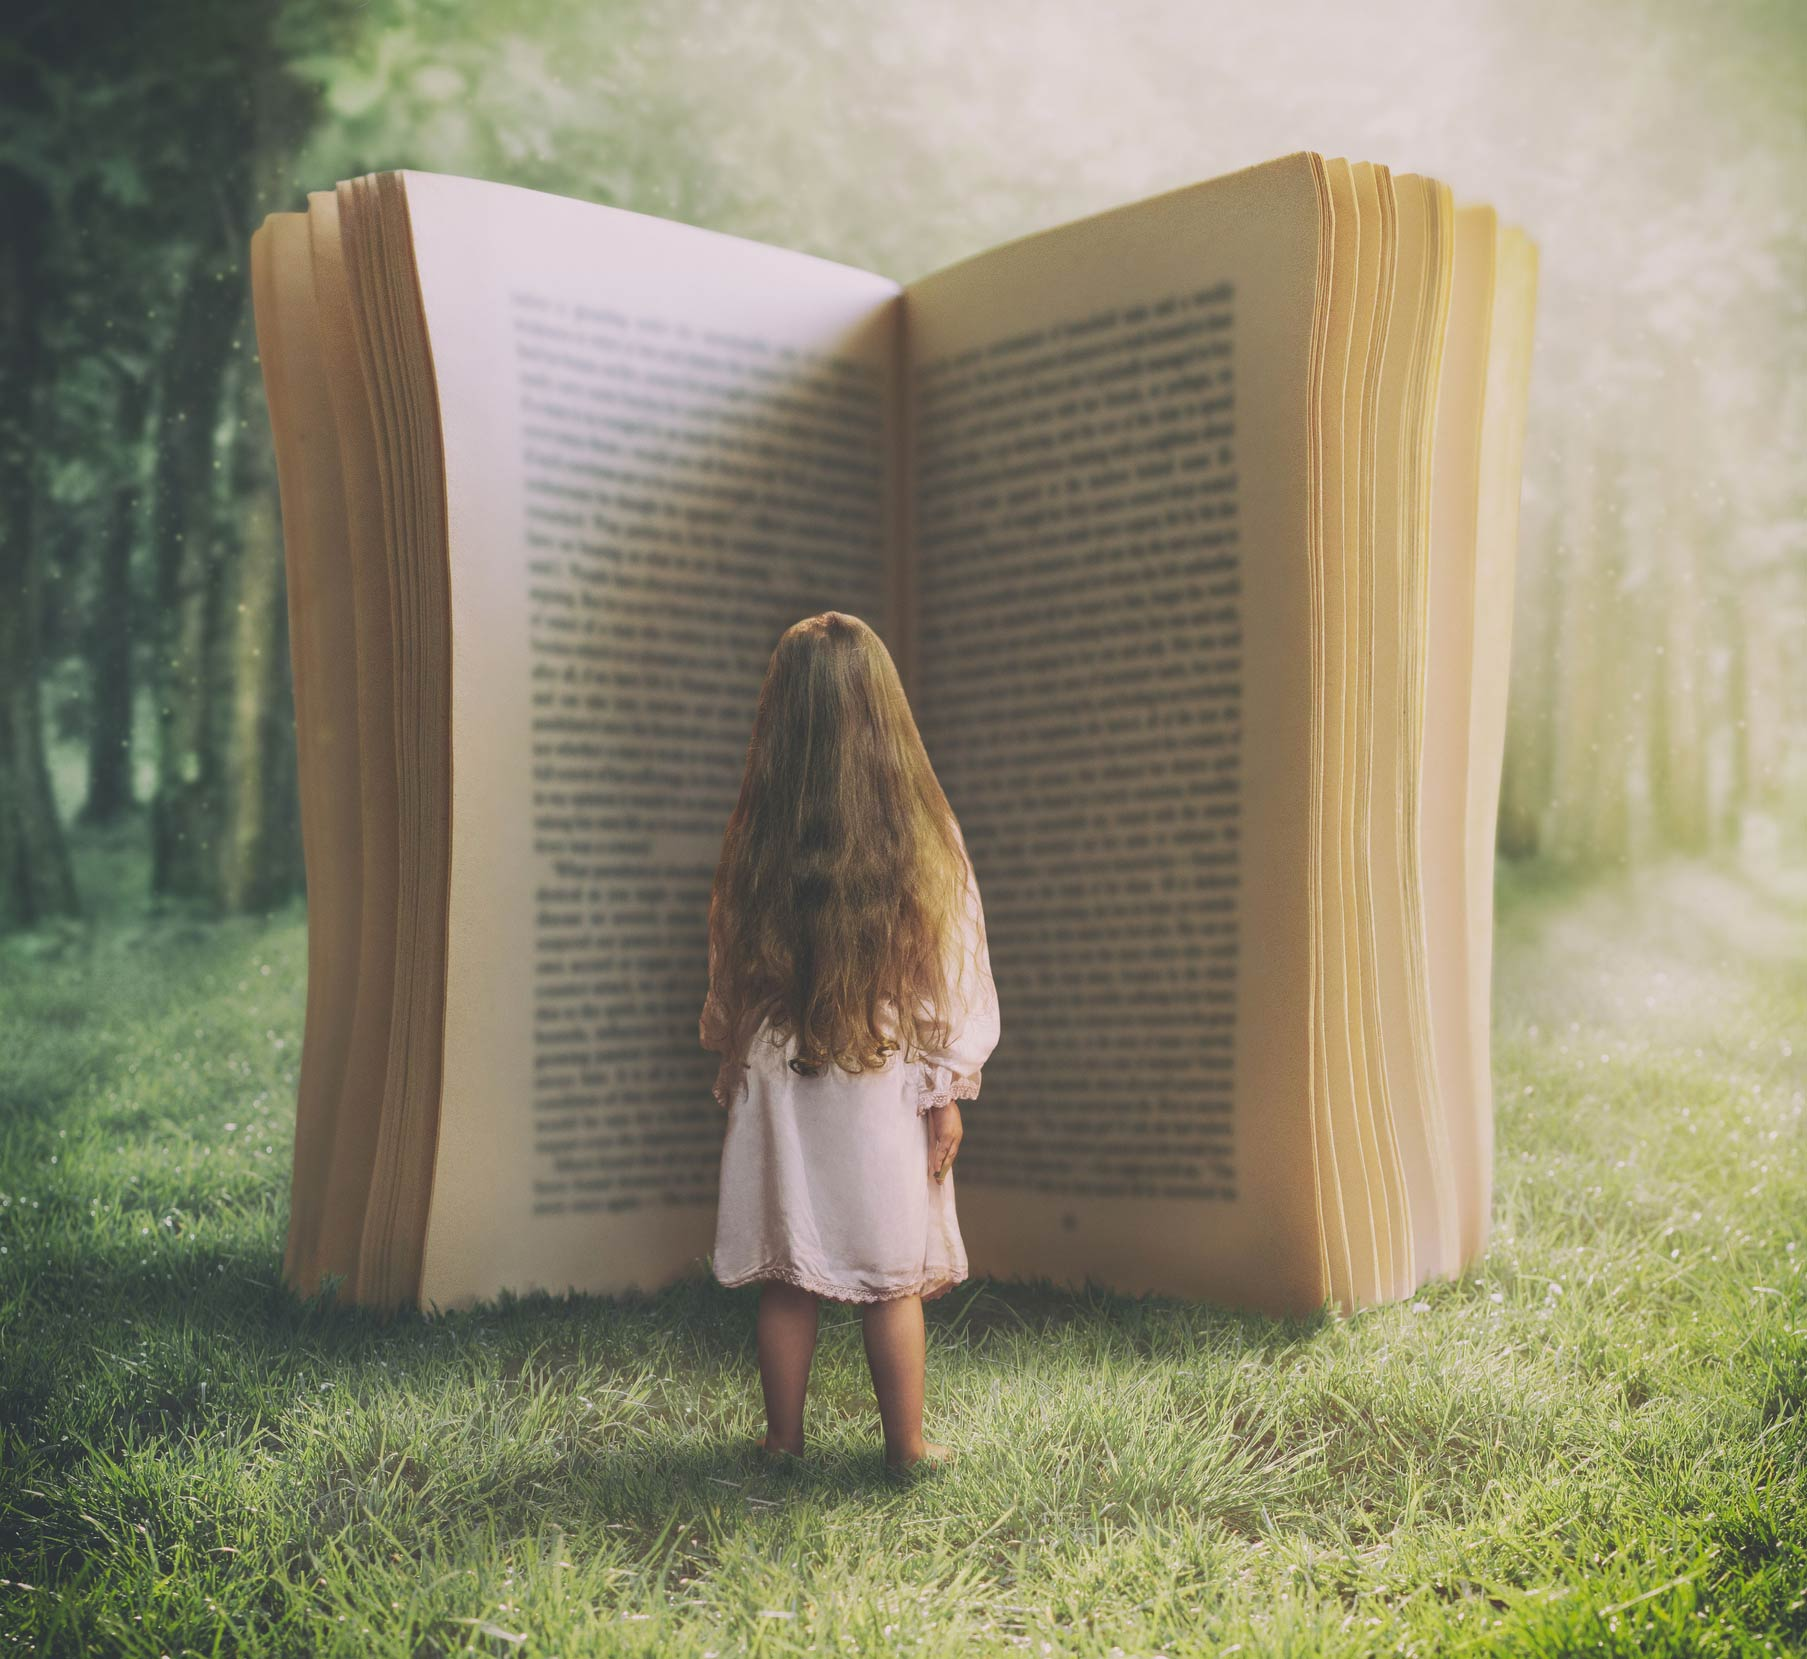 Literacy development and identifying bilingual children with difficulties